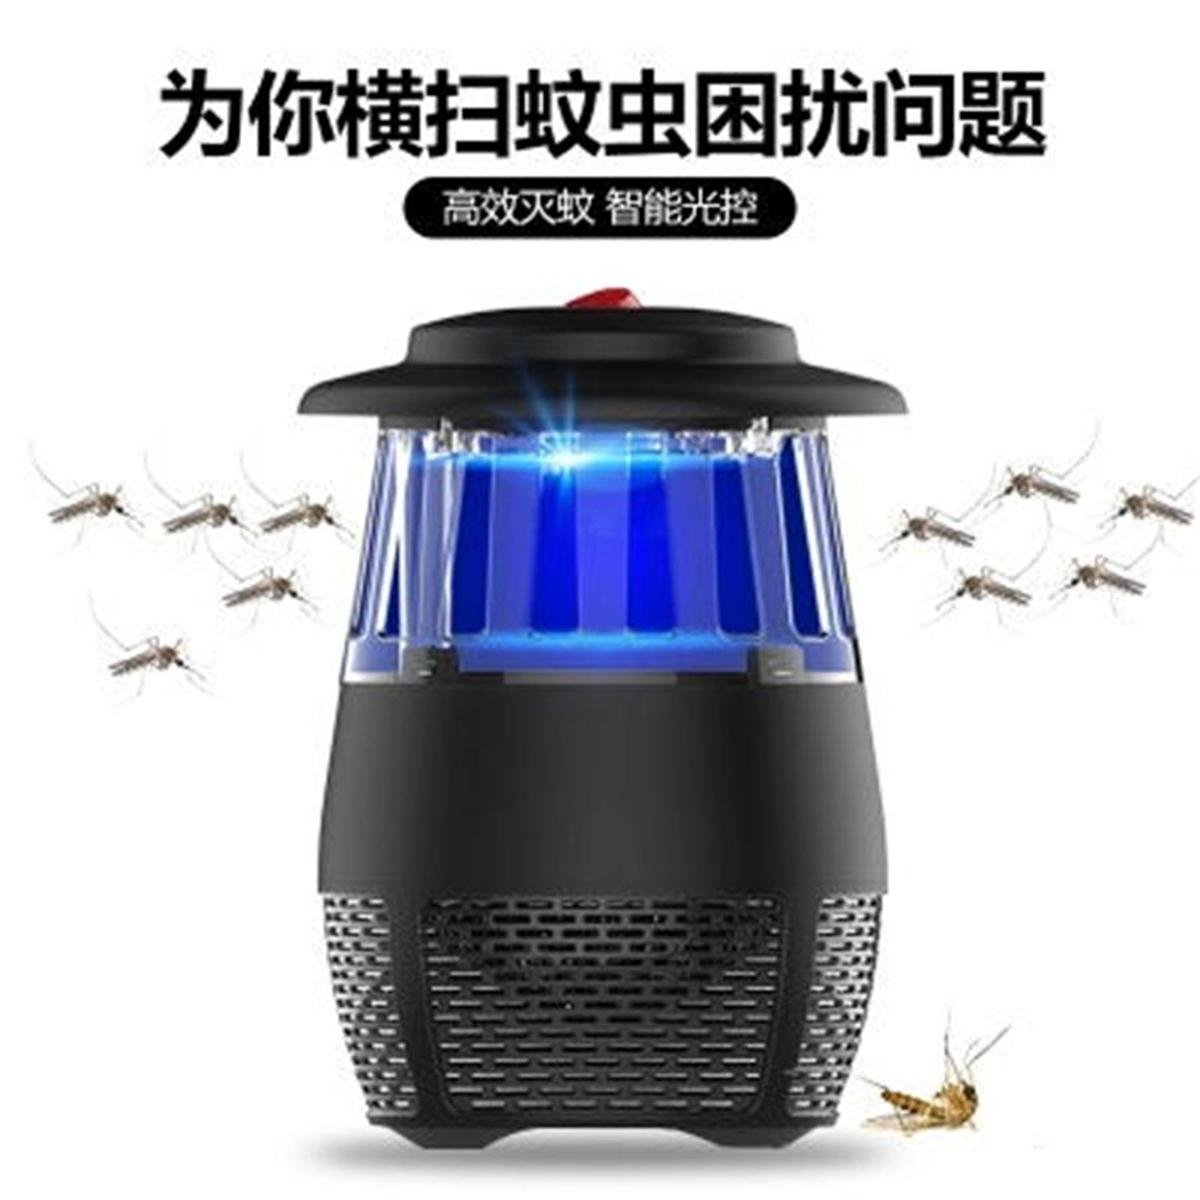 Hondark 1ea nice Mosquito killer lamp fly swatter lamp with 1.2meter USB cable and power socket for patio garden or room